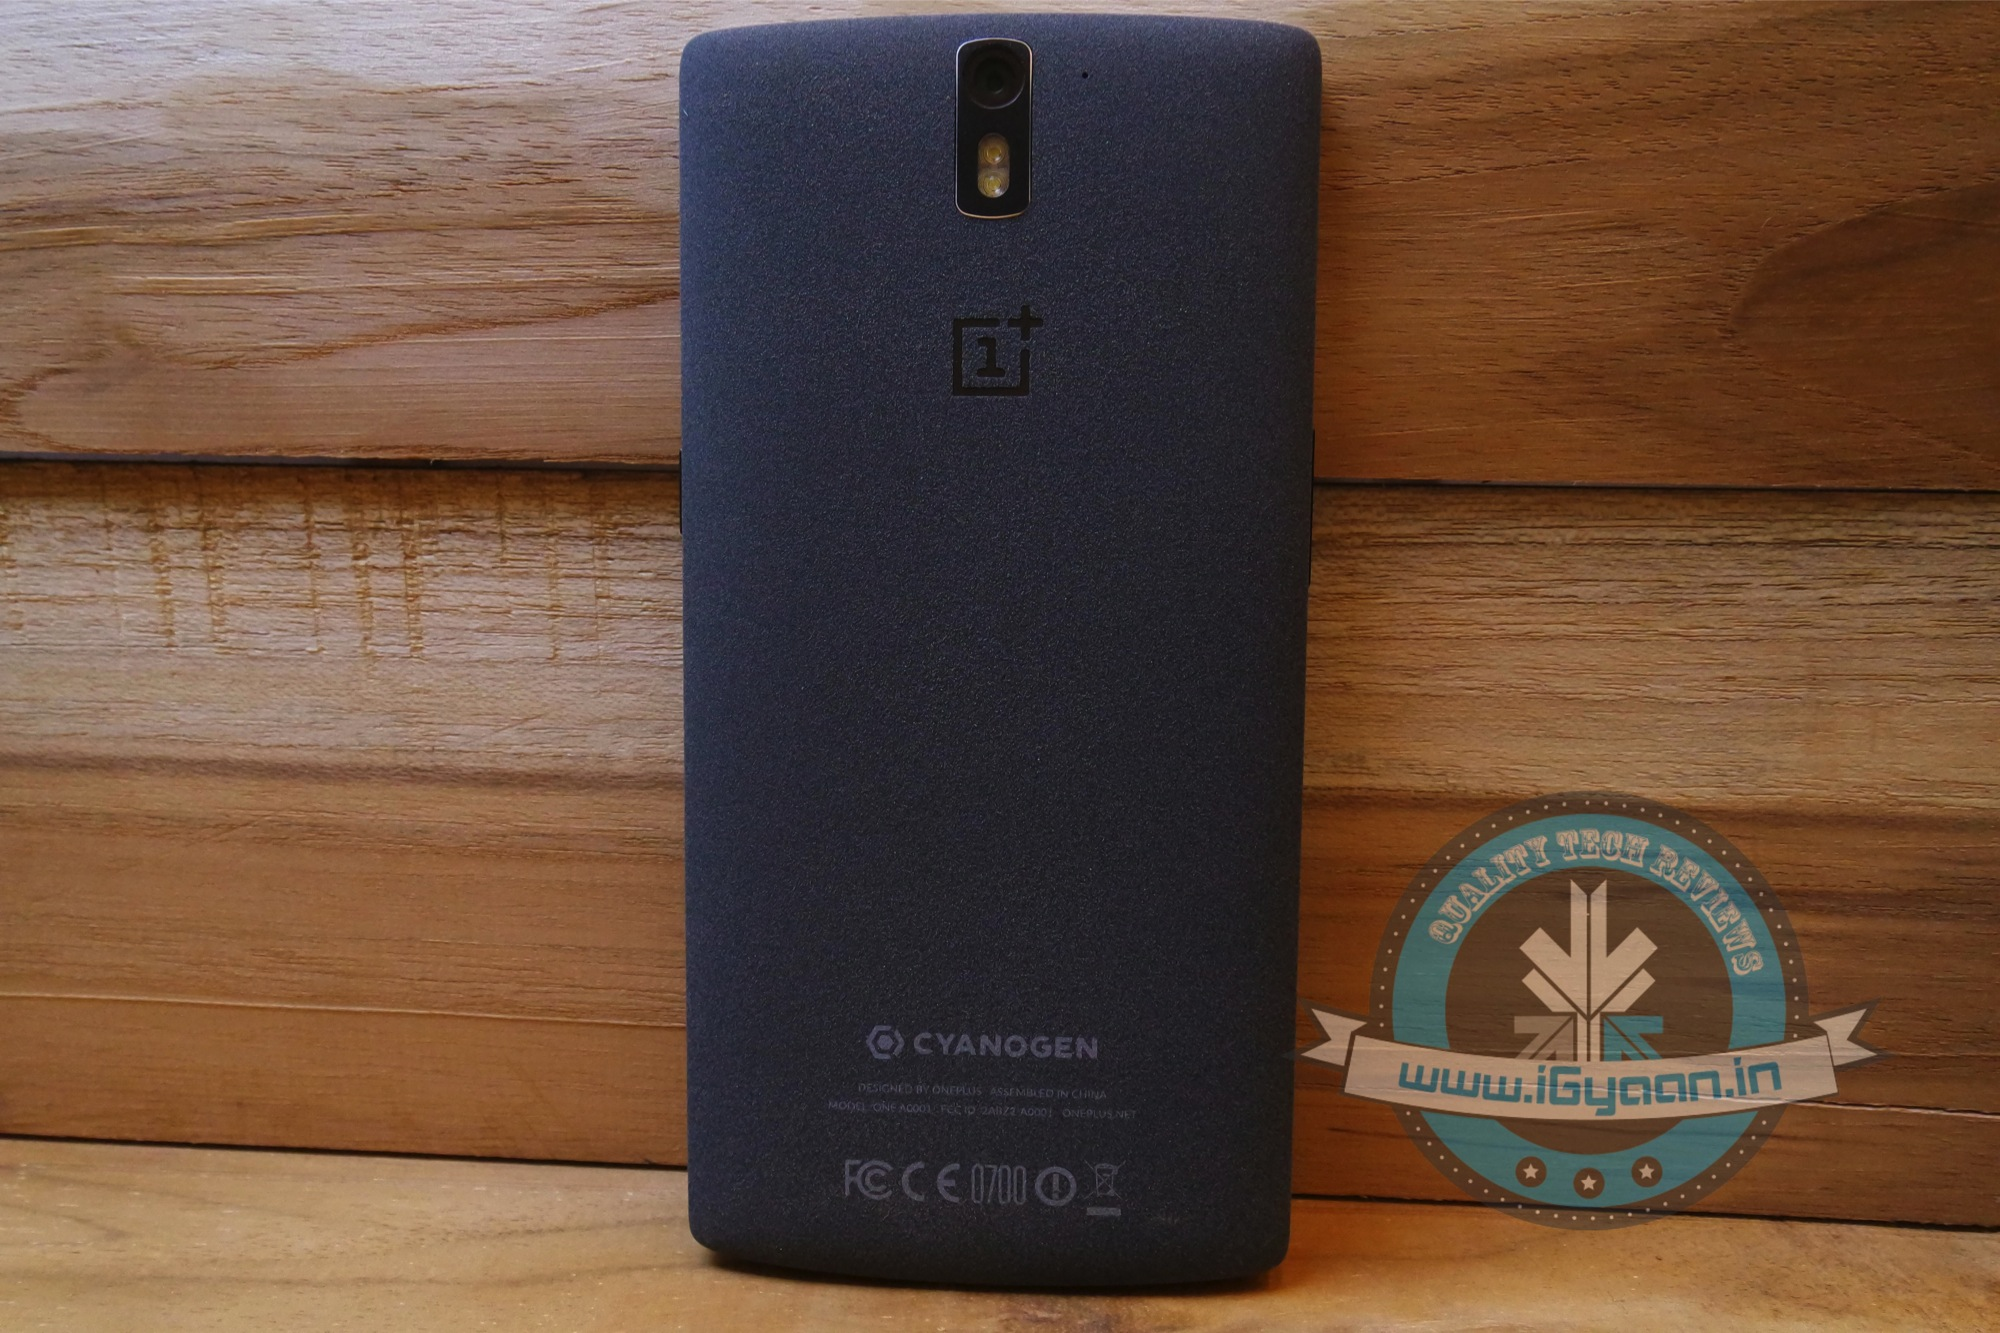 OnePlus One iGyaan 0